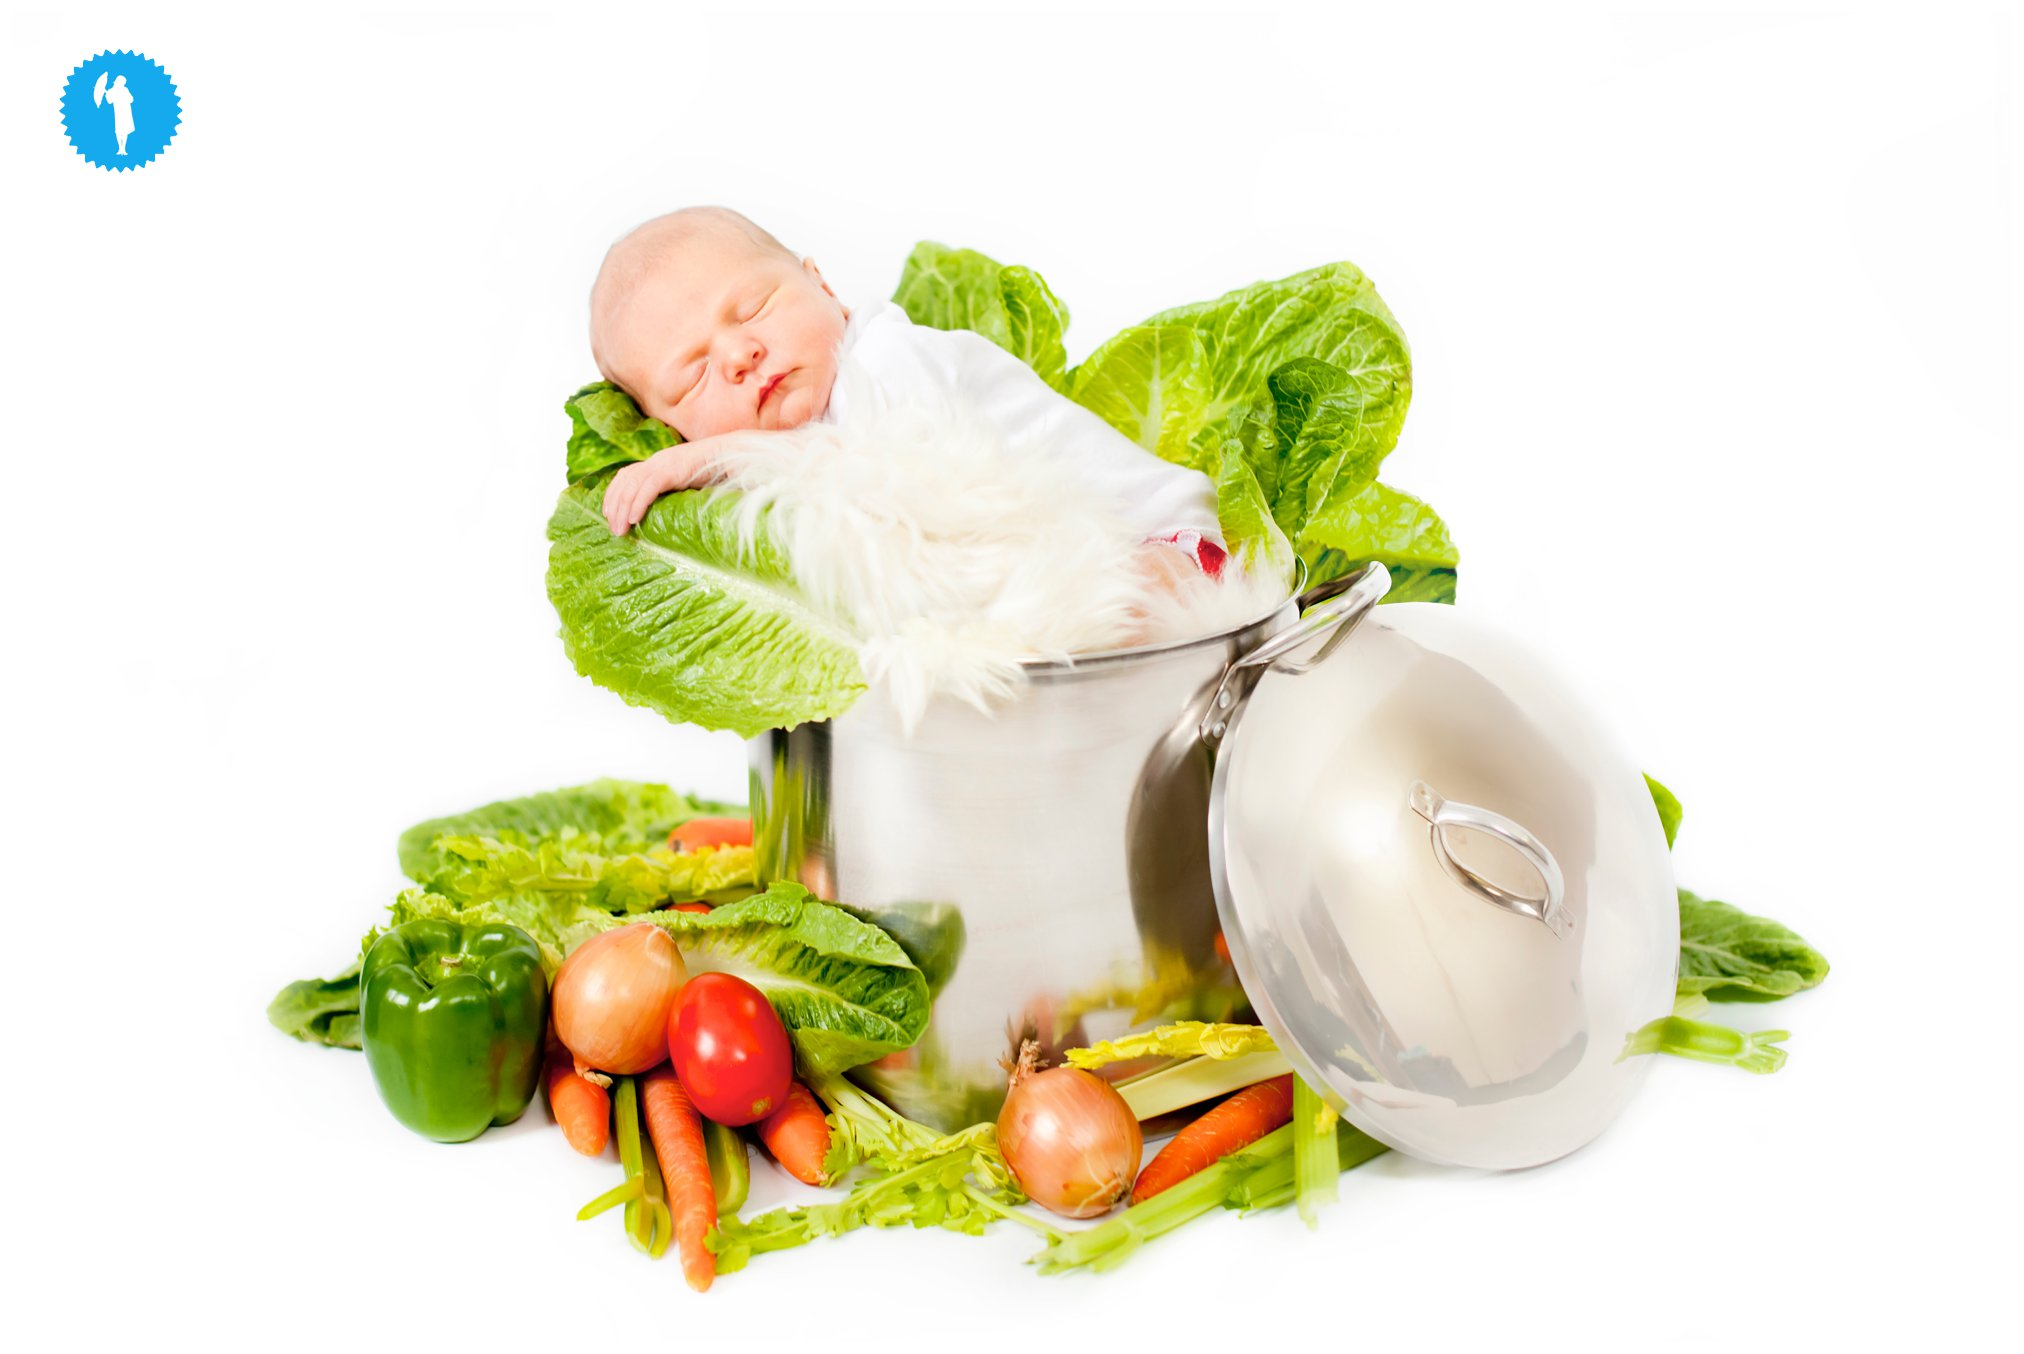 Baby photo with garden vegetables.